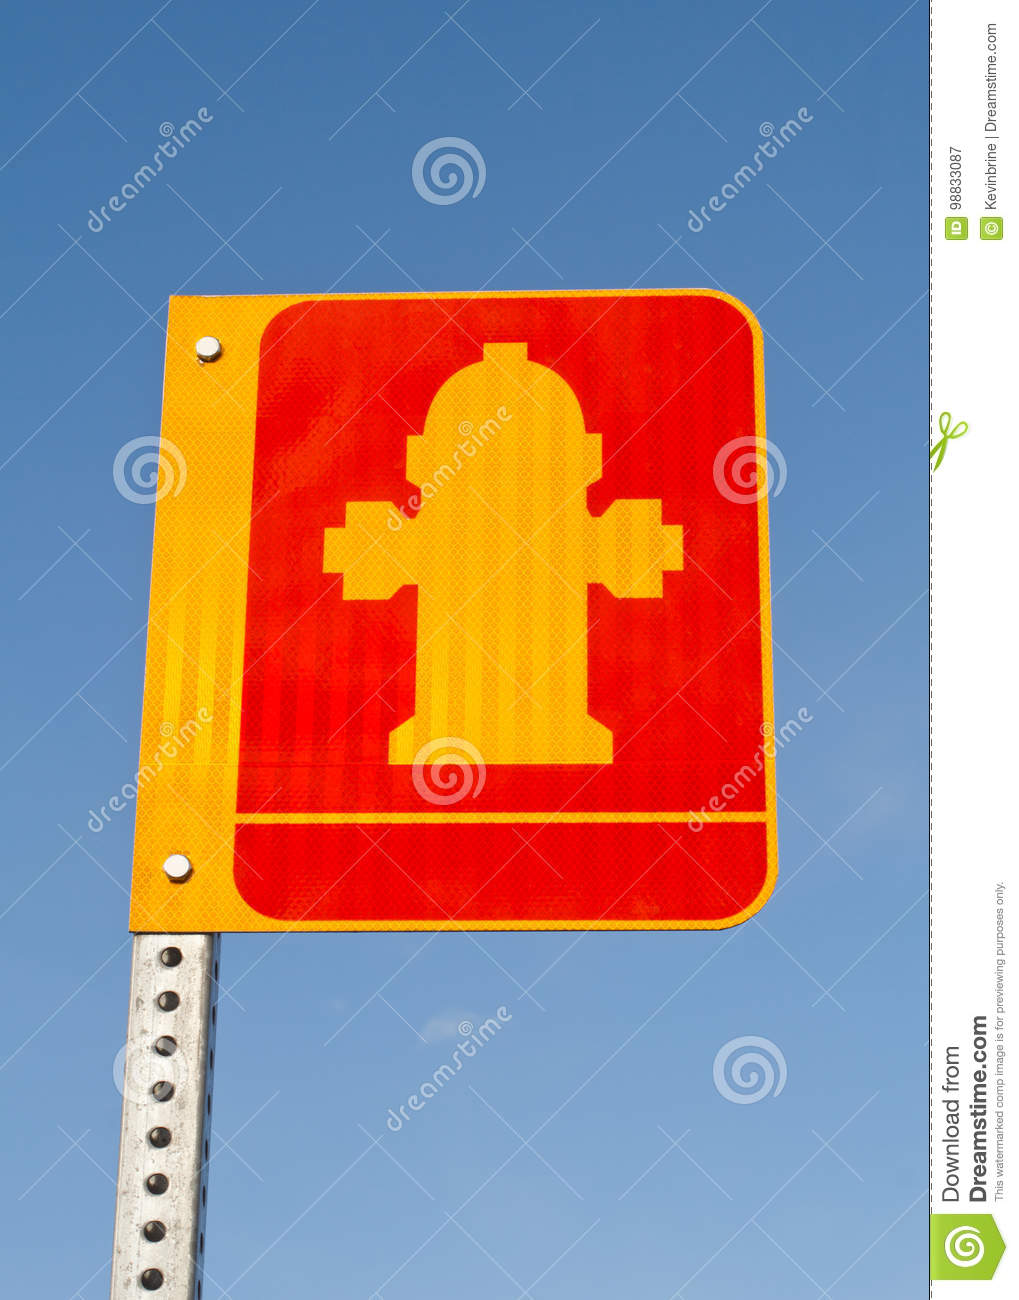 Fire Hydrant Sign Stock Image Image Of Background Inflame 98833087